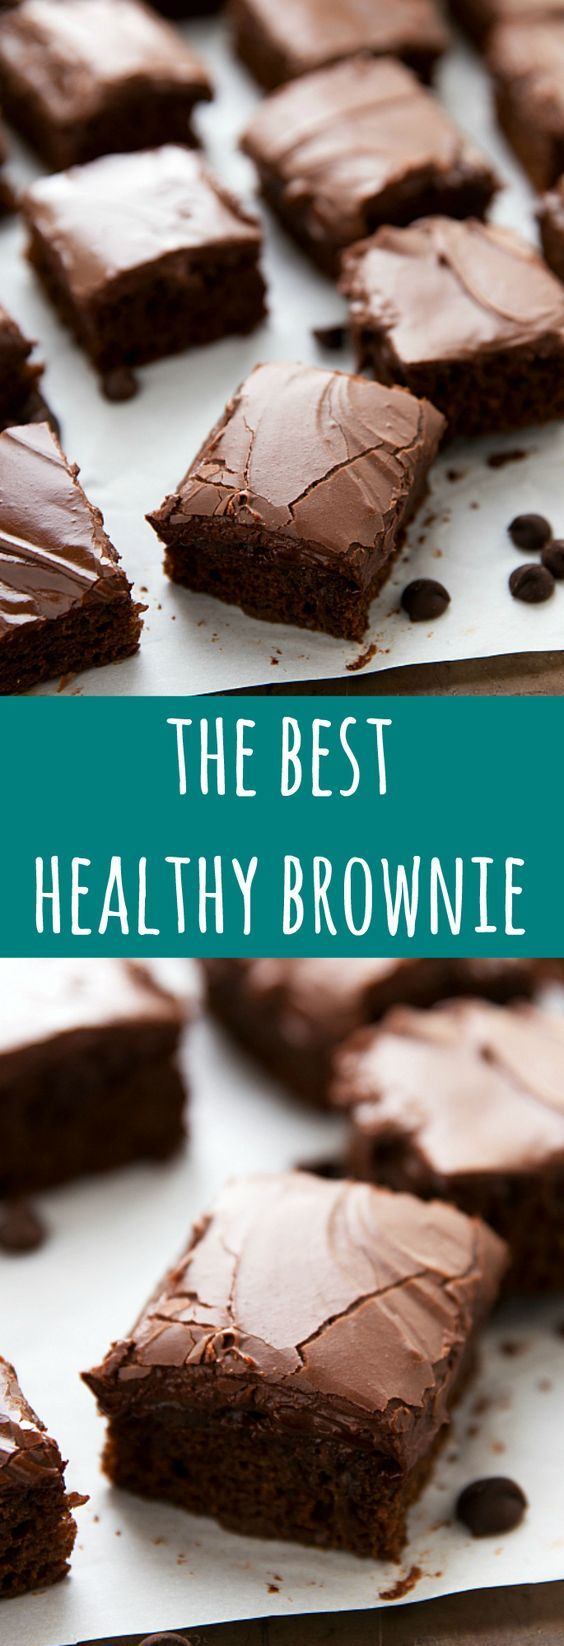 The BEST healthy brownies with no flour, no refined white sugar, no butter, and no eggs. These delicious brownies are easy to make and include an optional frosting recipe made using Greek yogurt!: